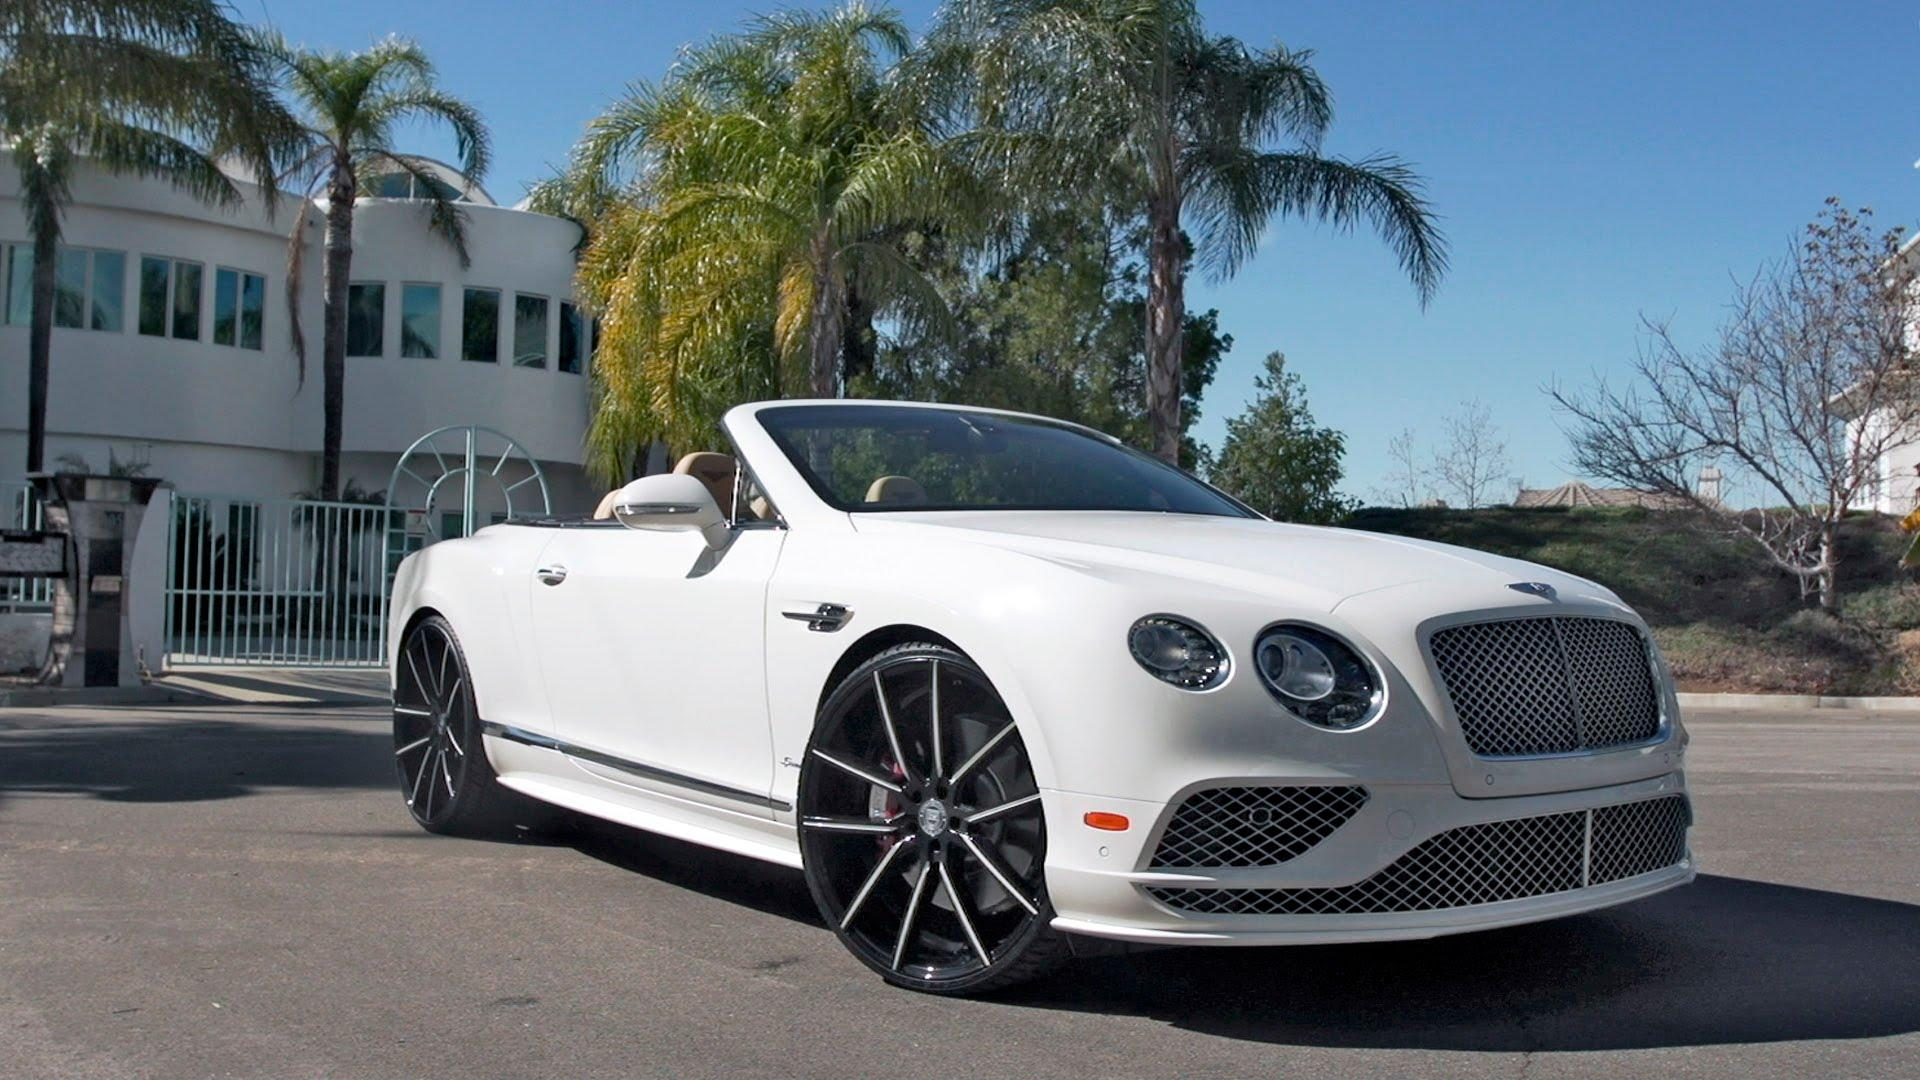 Bentley Continental Gt Speed Convertible Wallpapers HD 13